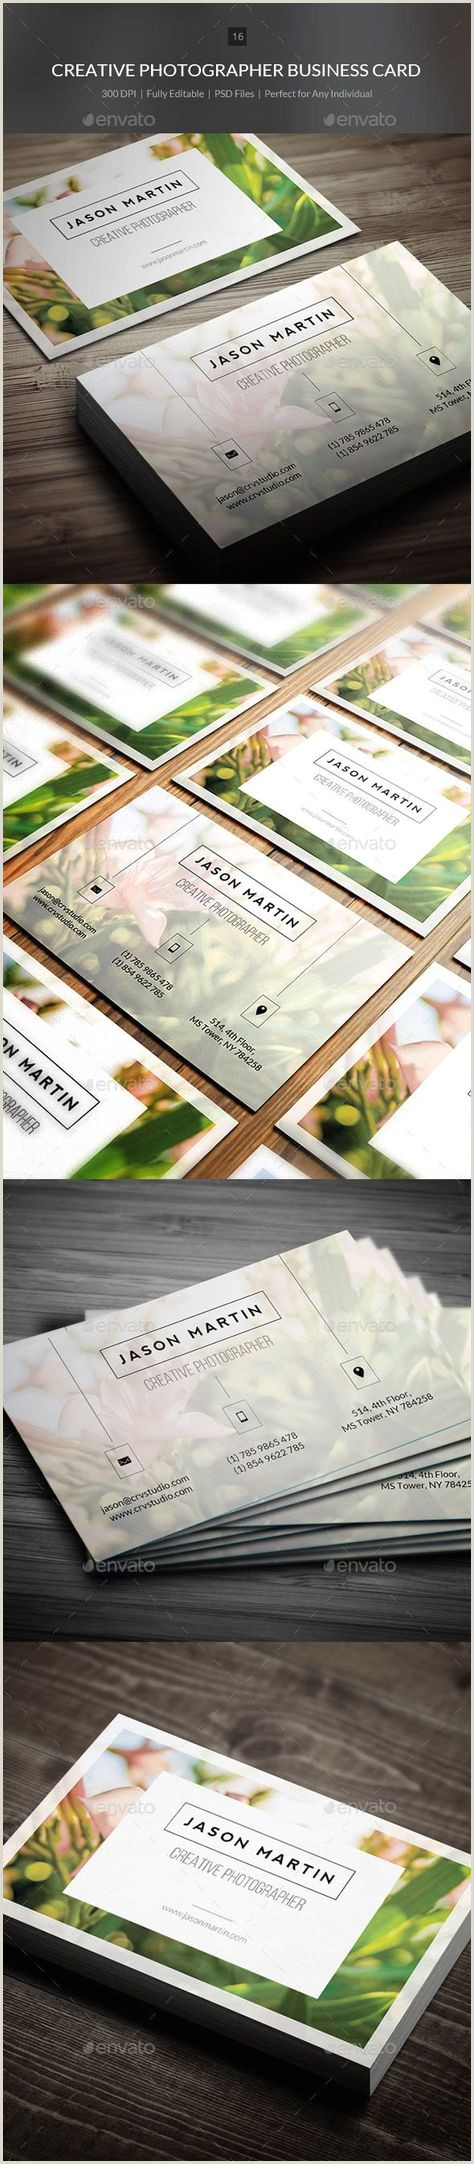 Business Cards Layouts 40 Trendy Ideas Photography Business Cards Template Creative